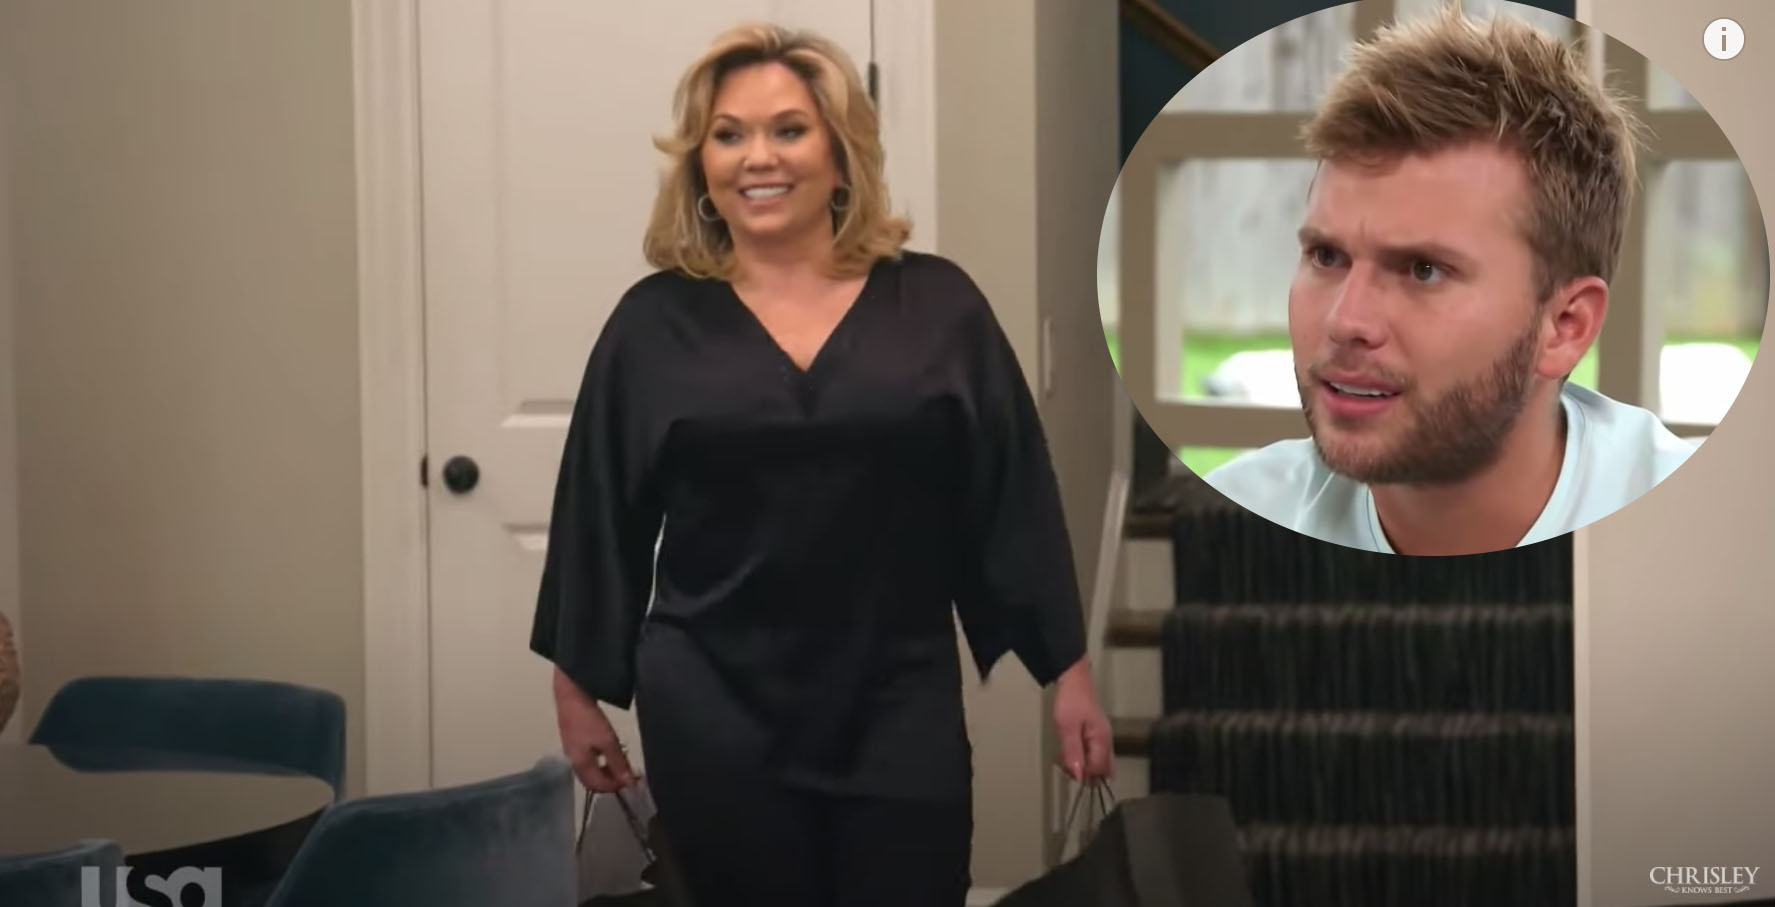 Chrisley Knows Best Chase Chrisley Julie Chrisley Mother's Day